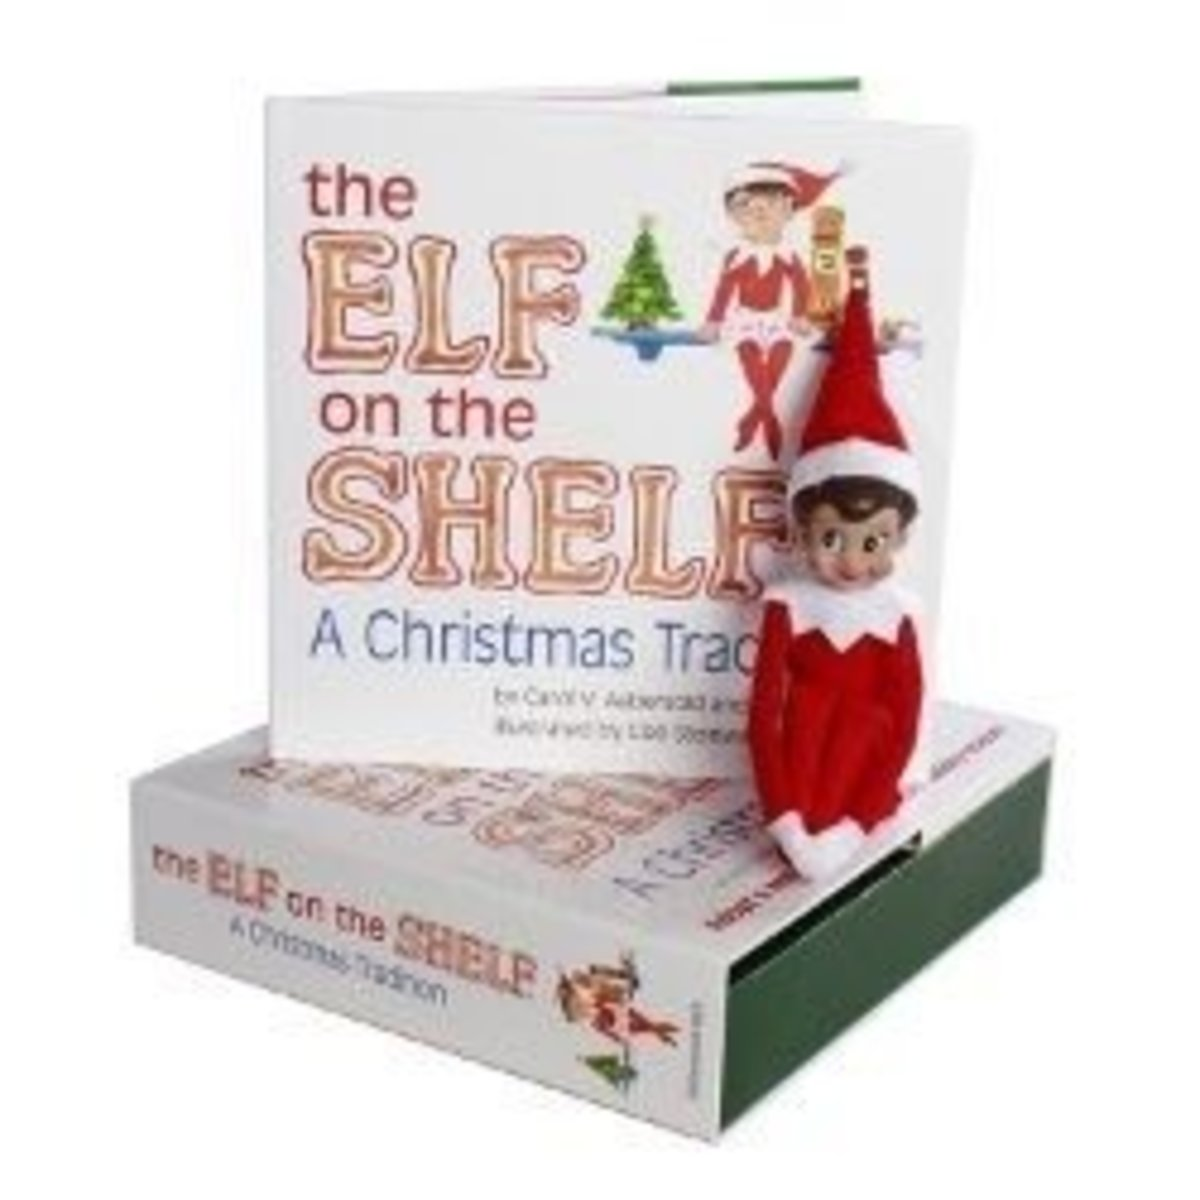 The Elf On The Shelf comes with different hair and eye color choices.  See Amazon for more details; that's where this picture came from.